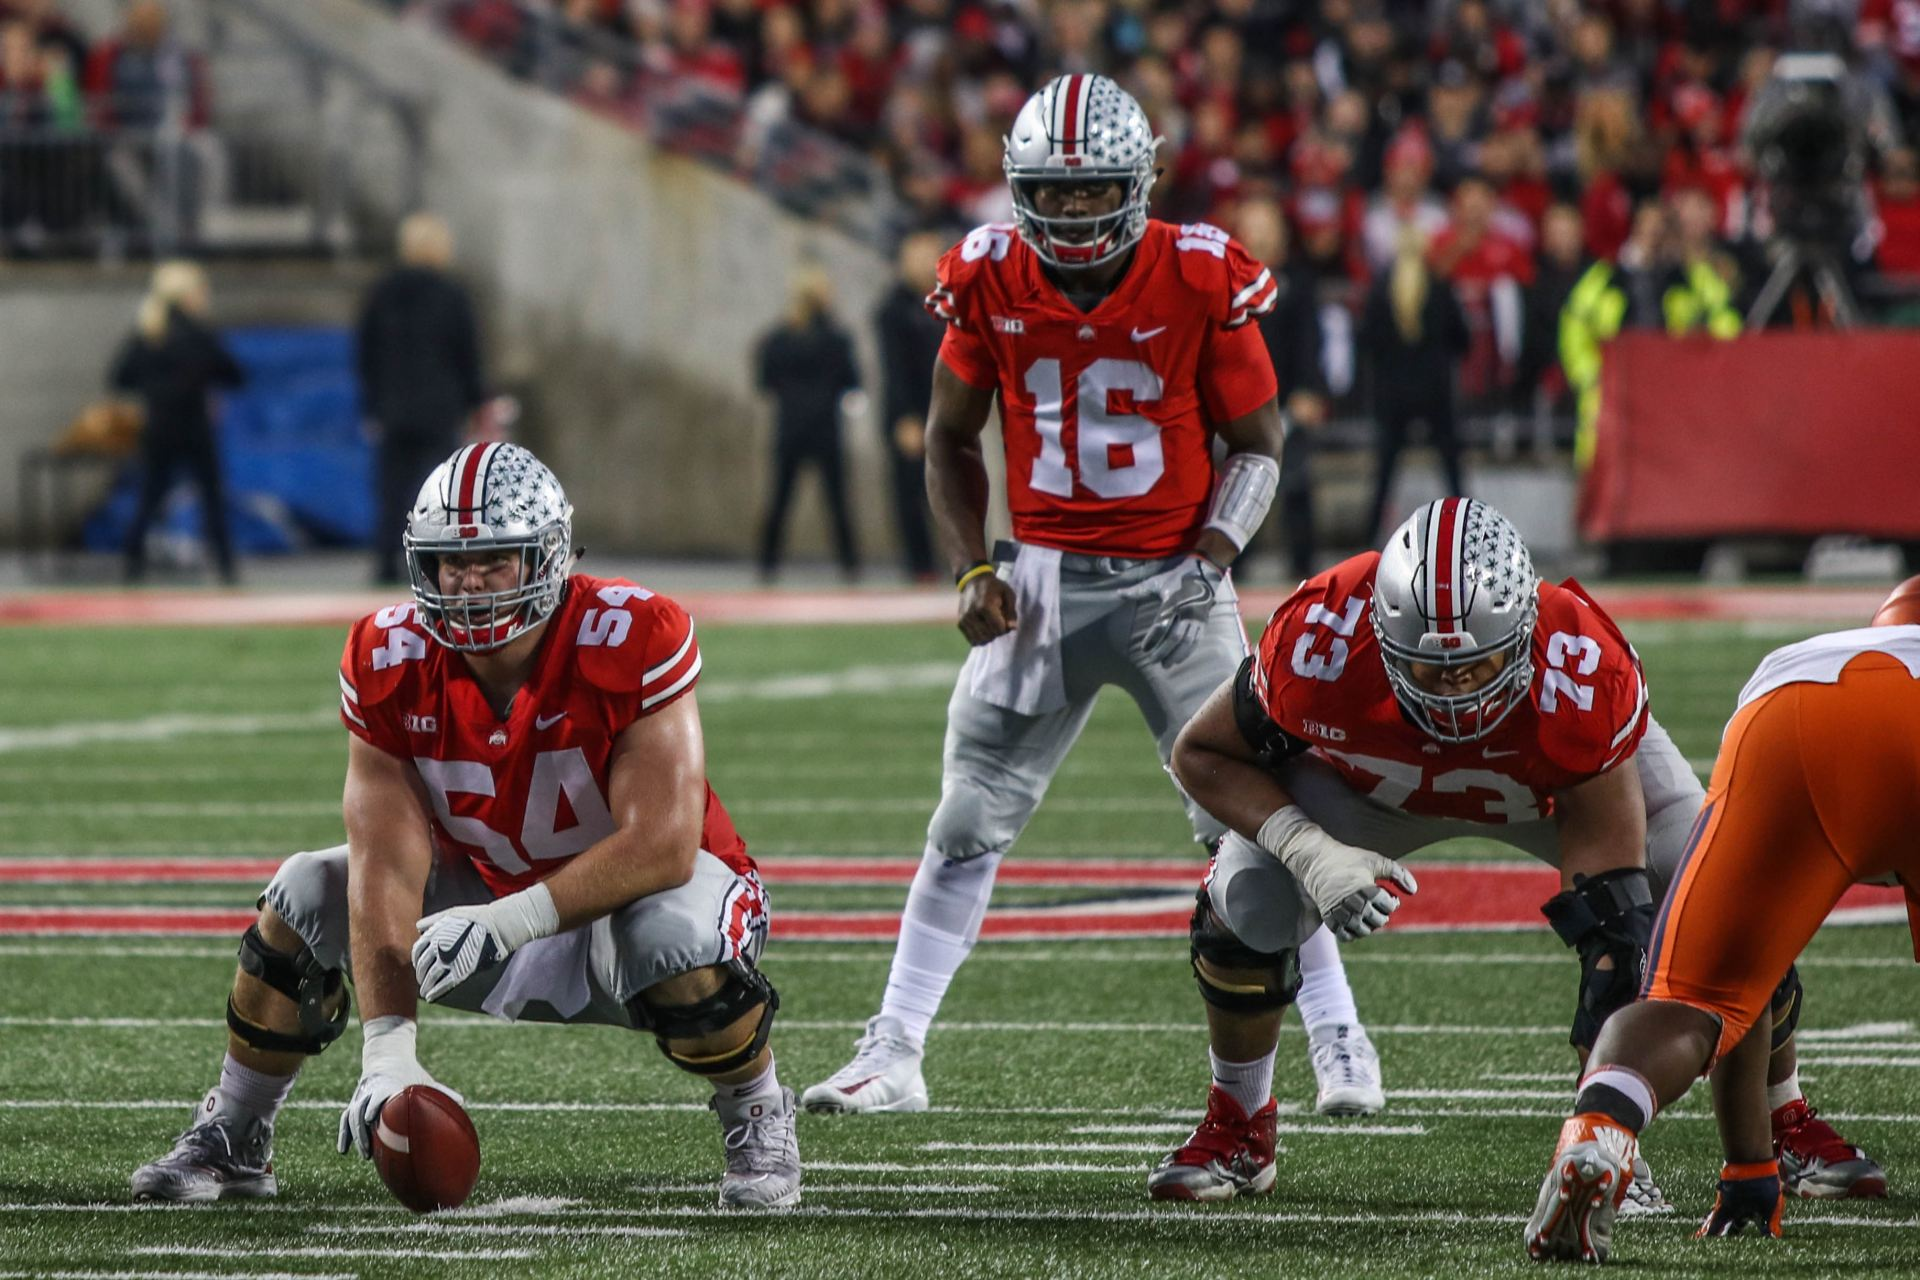 reputable site 2a1e4 312c1 Football  Ohio State offensive line tasked with slowing Michigan s stout  defensive line